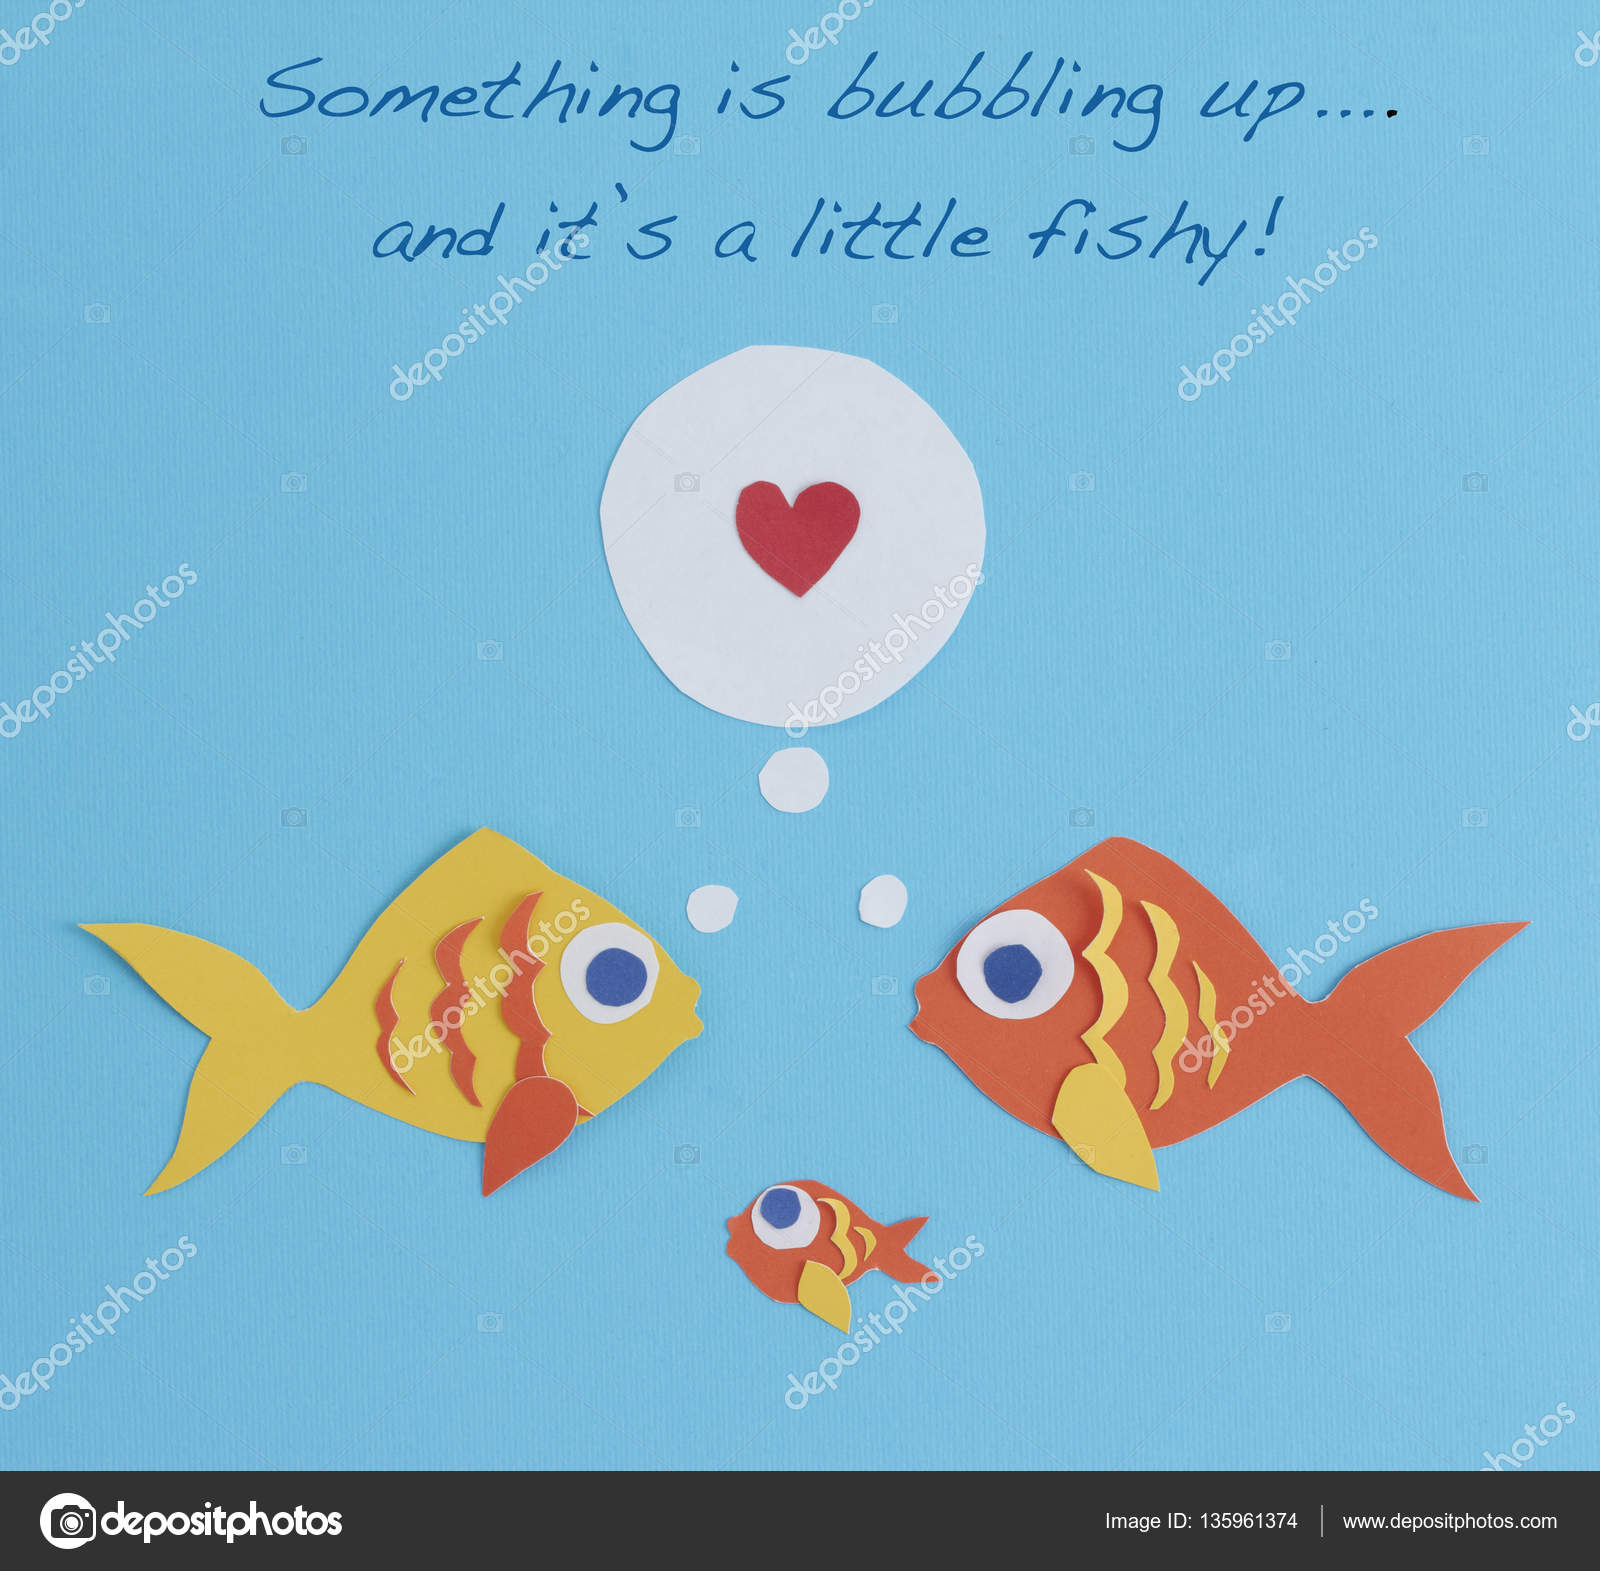 a paper fish couple has a new addition to the family a baby fish the fish couple have feelings of love toward their new baby the words something is